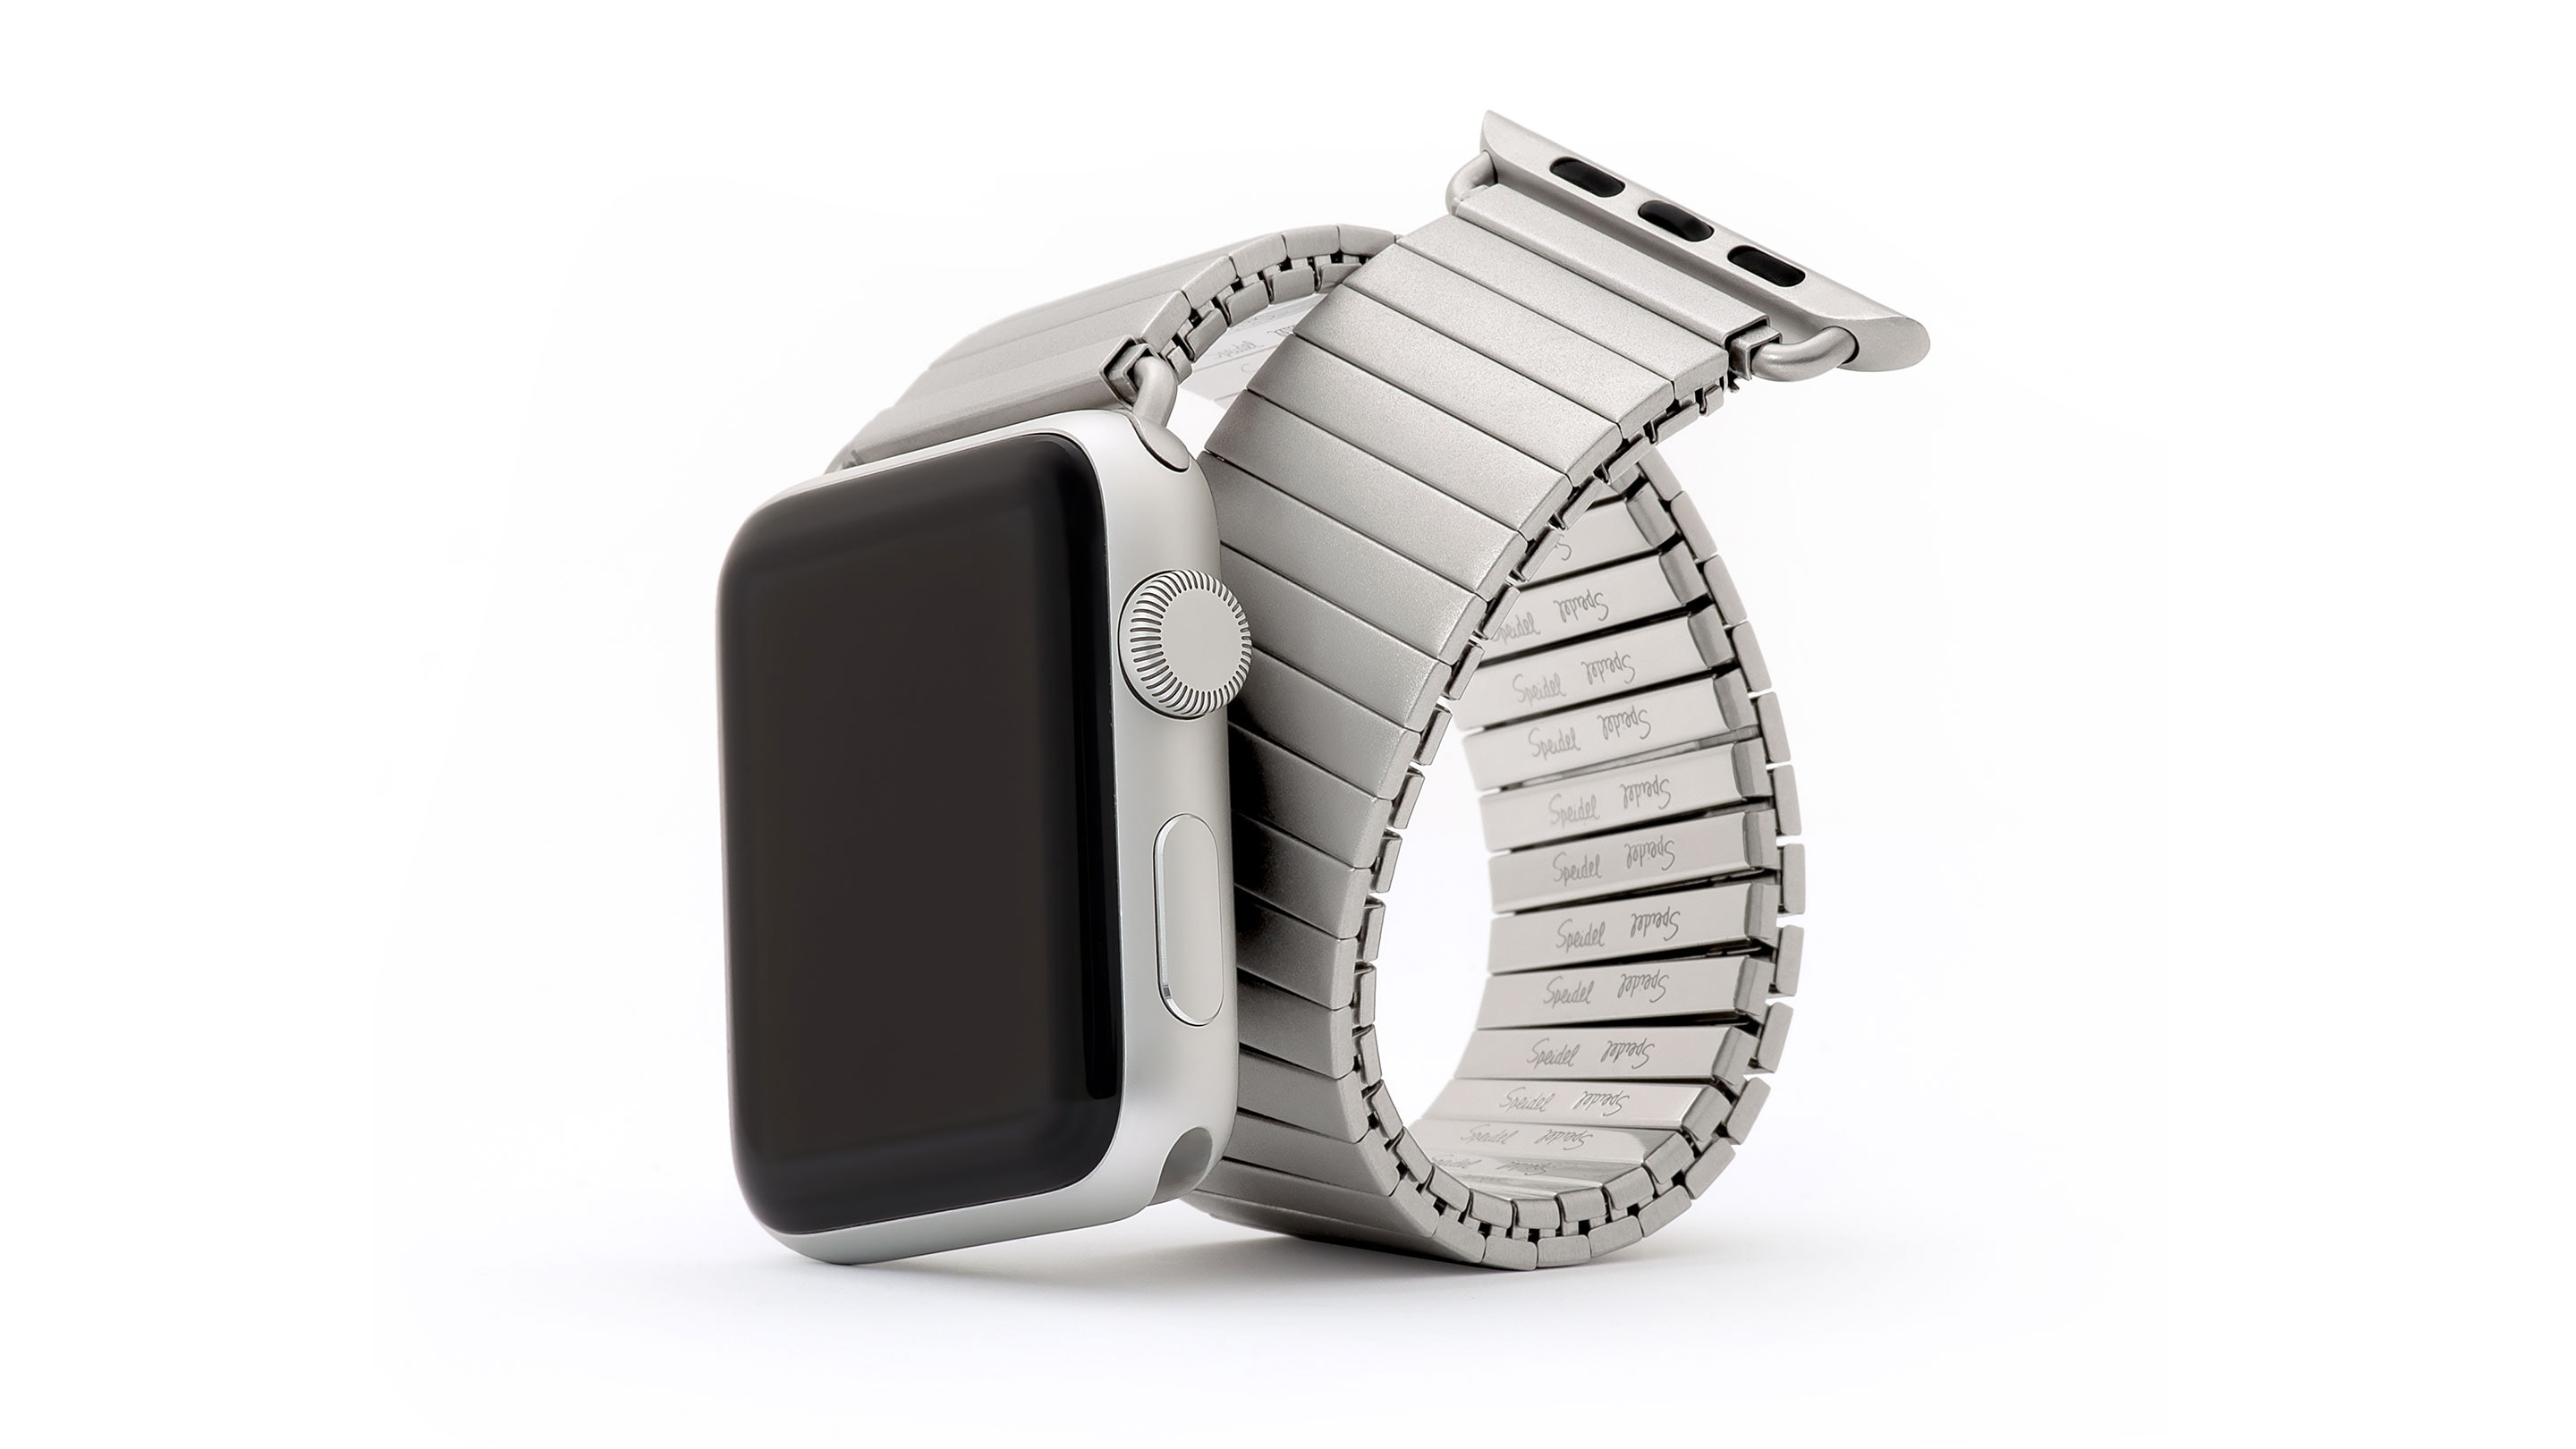 Twist 01.jpg?ixlib=rails 1.1 Introducing: The Speidel Twist-O-Flex Bracelet For Apple Watch Introducing: The Speidel Twist-O-Flex Bracelet For Apple Watch twist 01